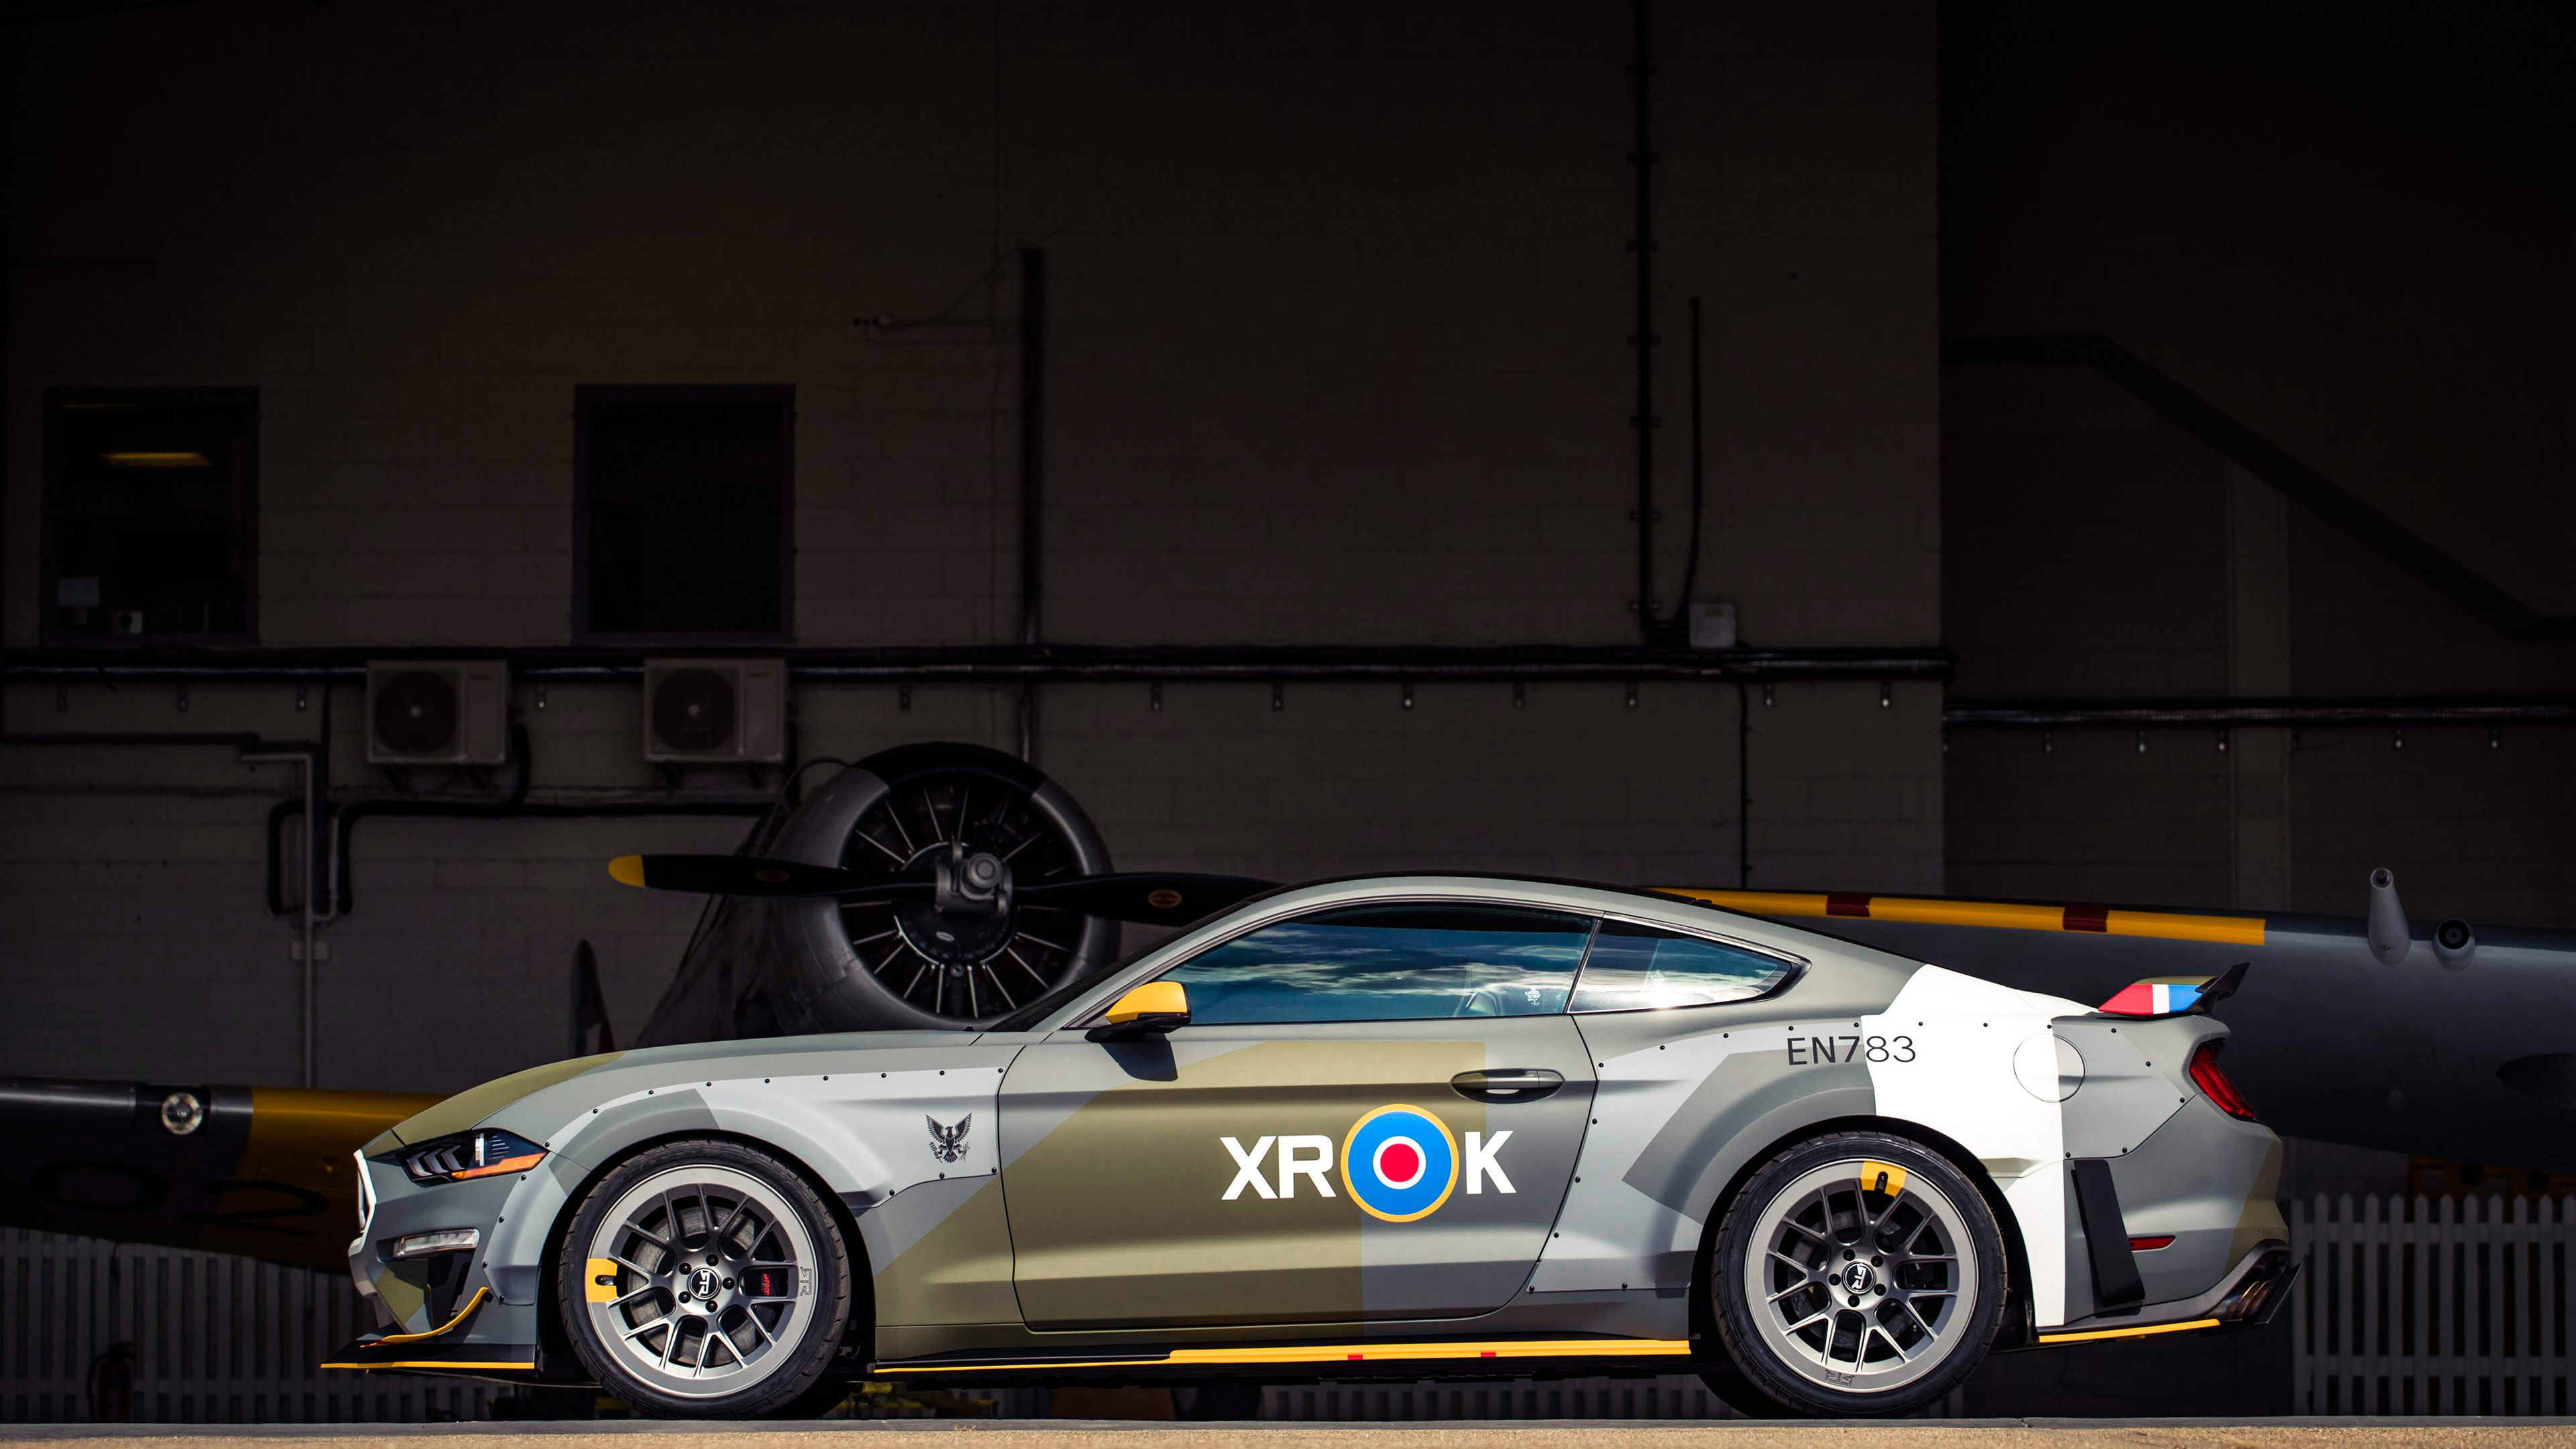 ford eagle squadron mustang gt 2018 side view 1539112385 - Ford Eagle Squadron Mustang GT 2018 Side View - mustang wallpapers, hd-wallpapers, ford wallpapers, ford mustang wallpapers, 4k-wallpapers, 2018 cars wallpapers